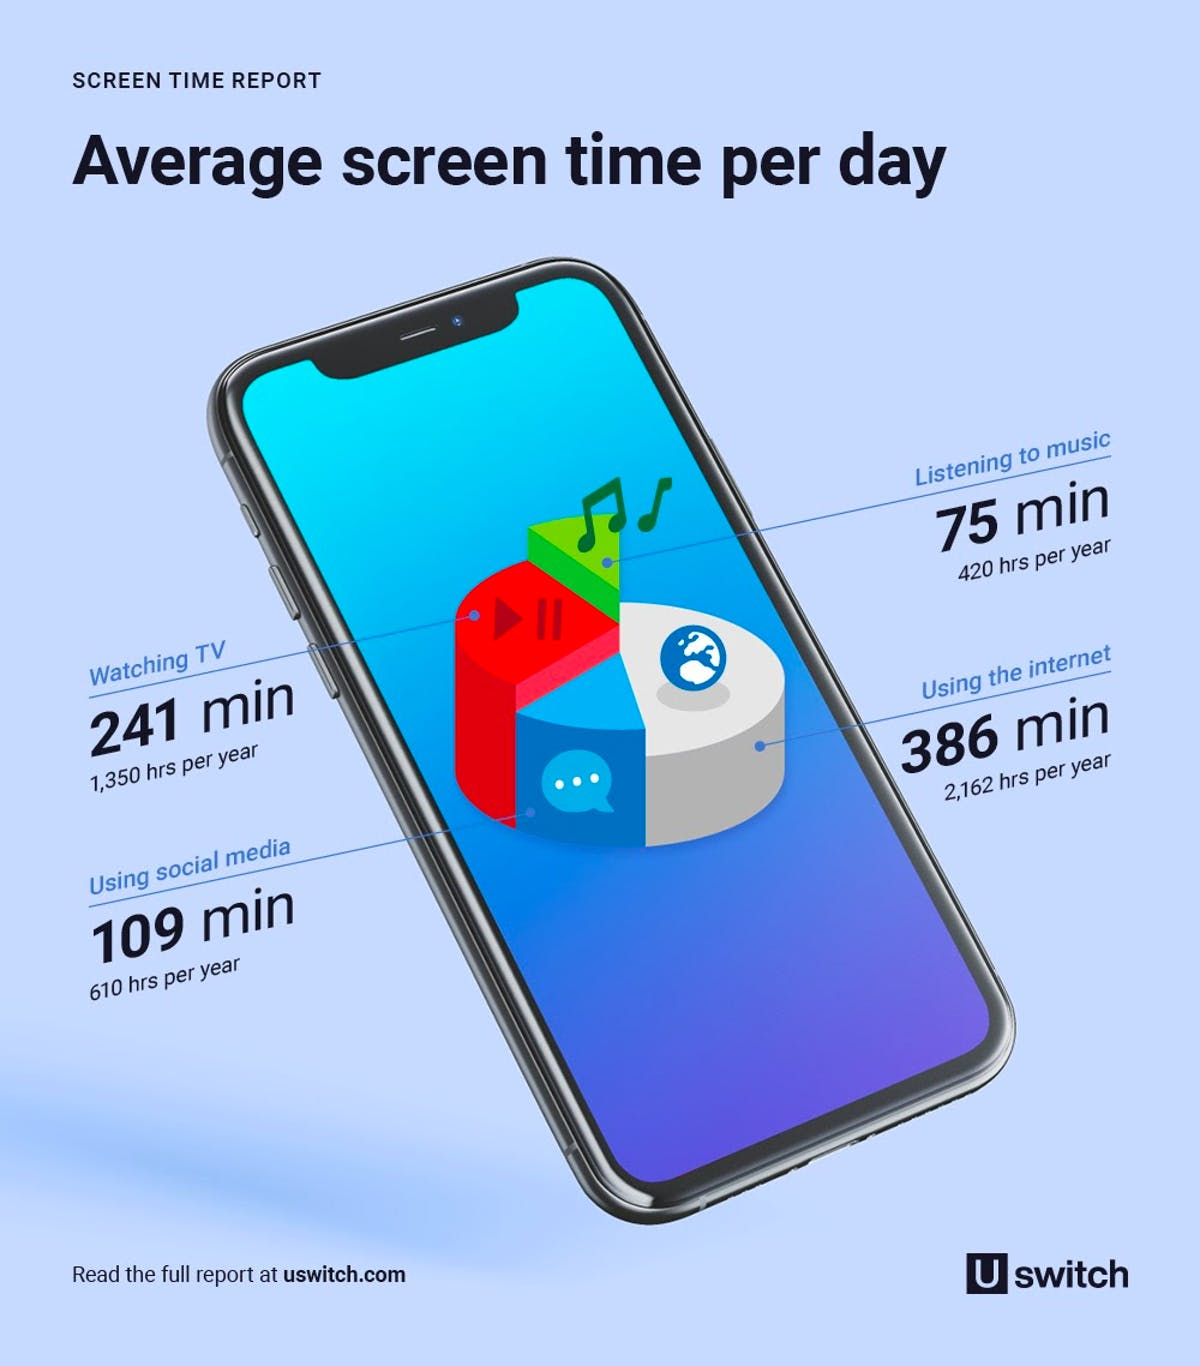 Screentime report - infographic showing the average screen time per day